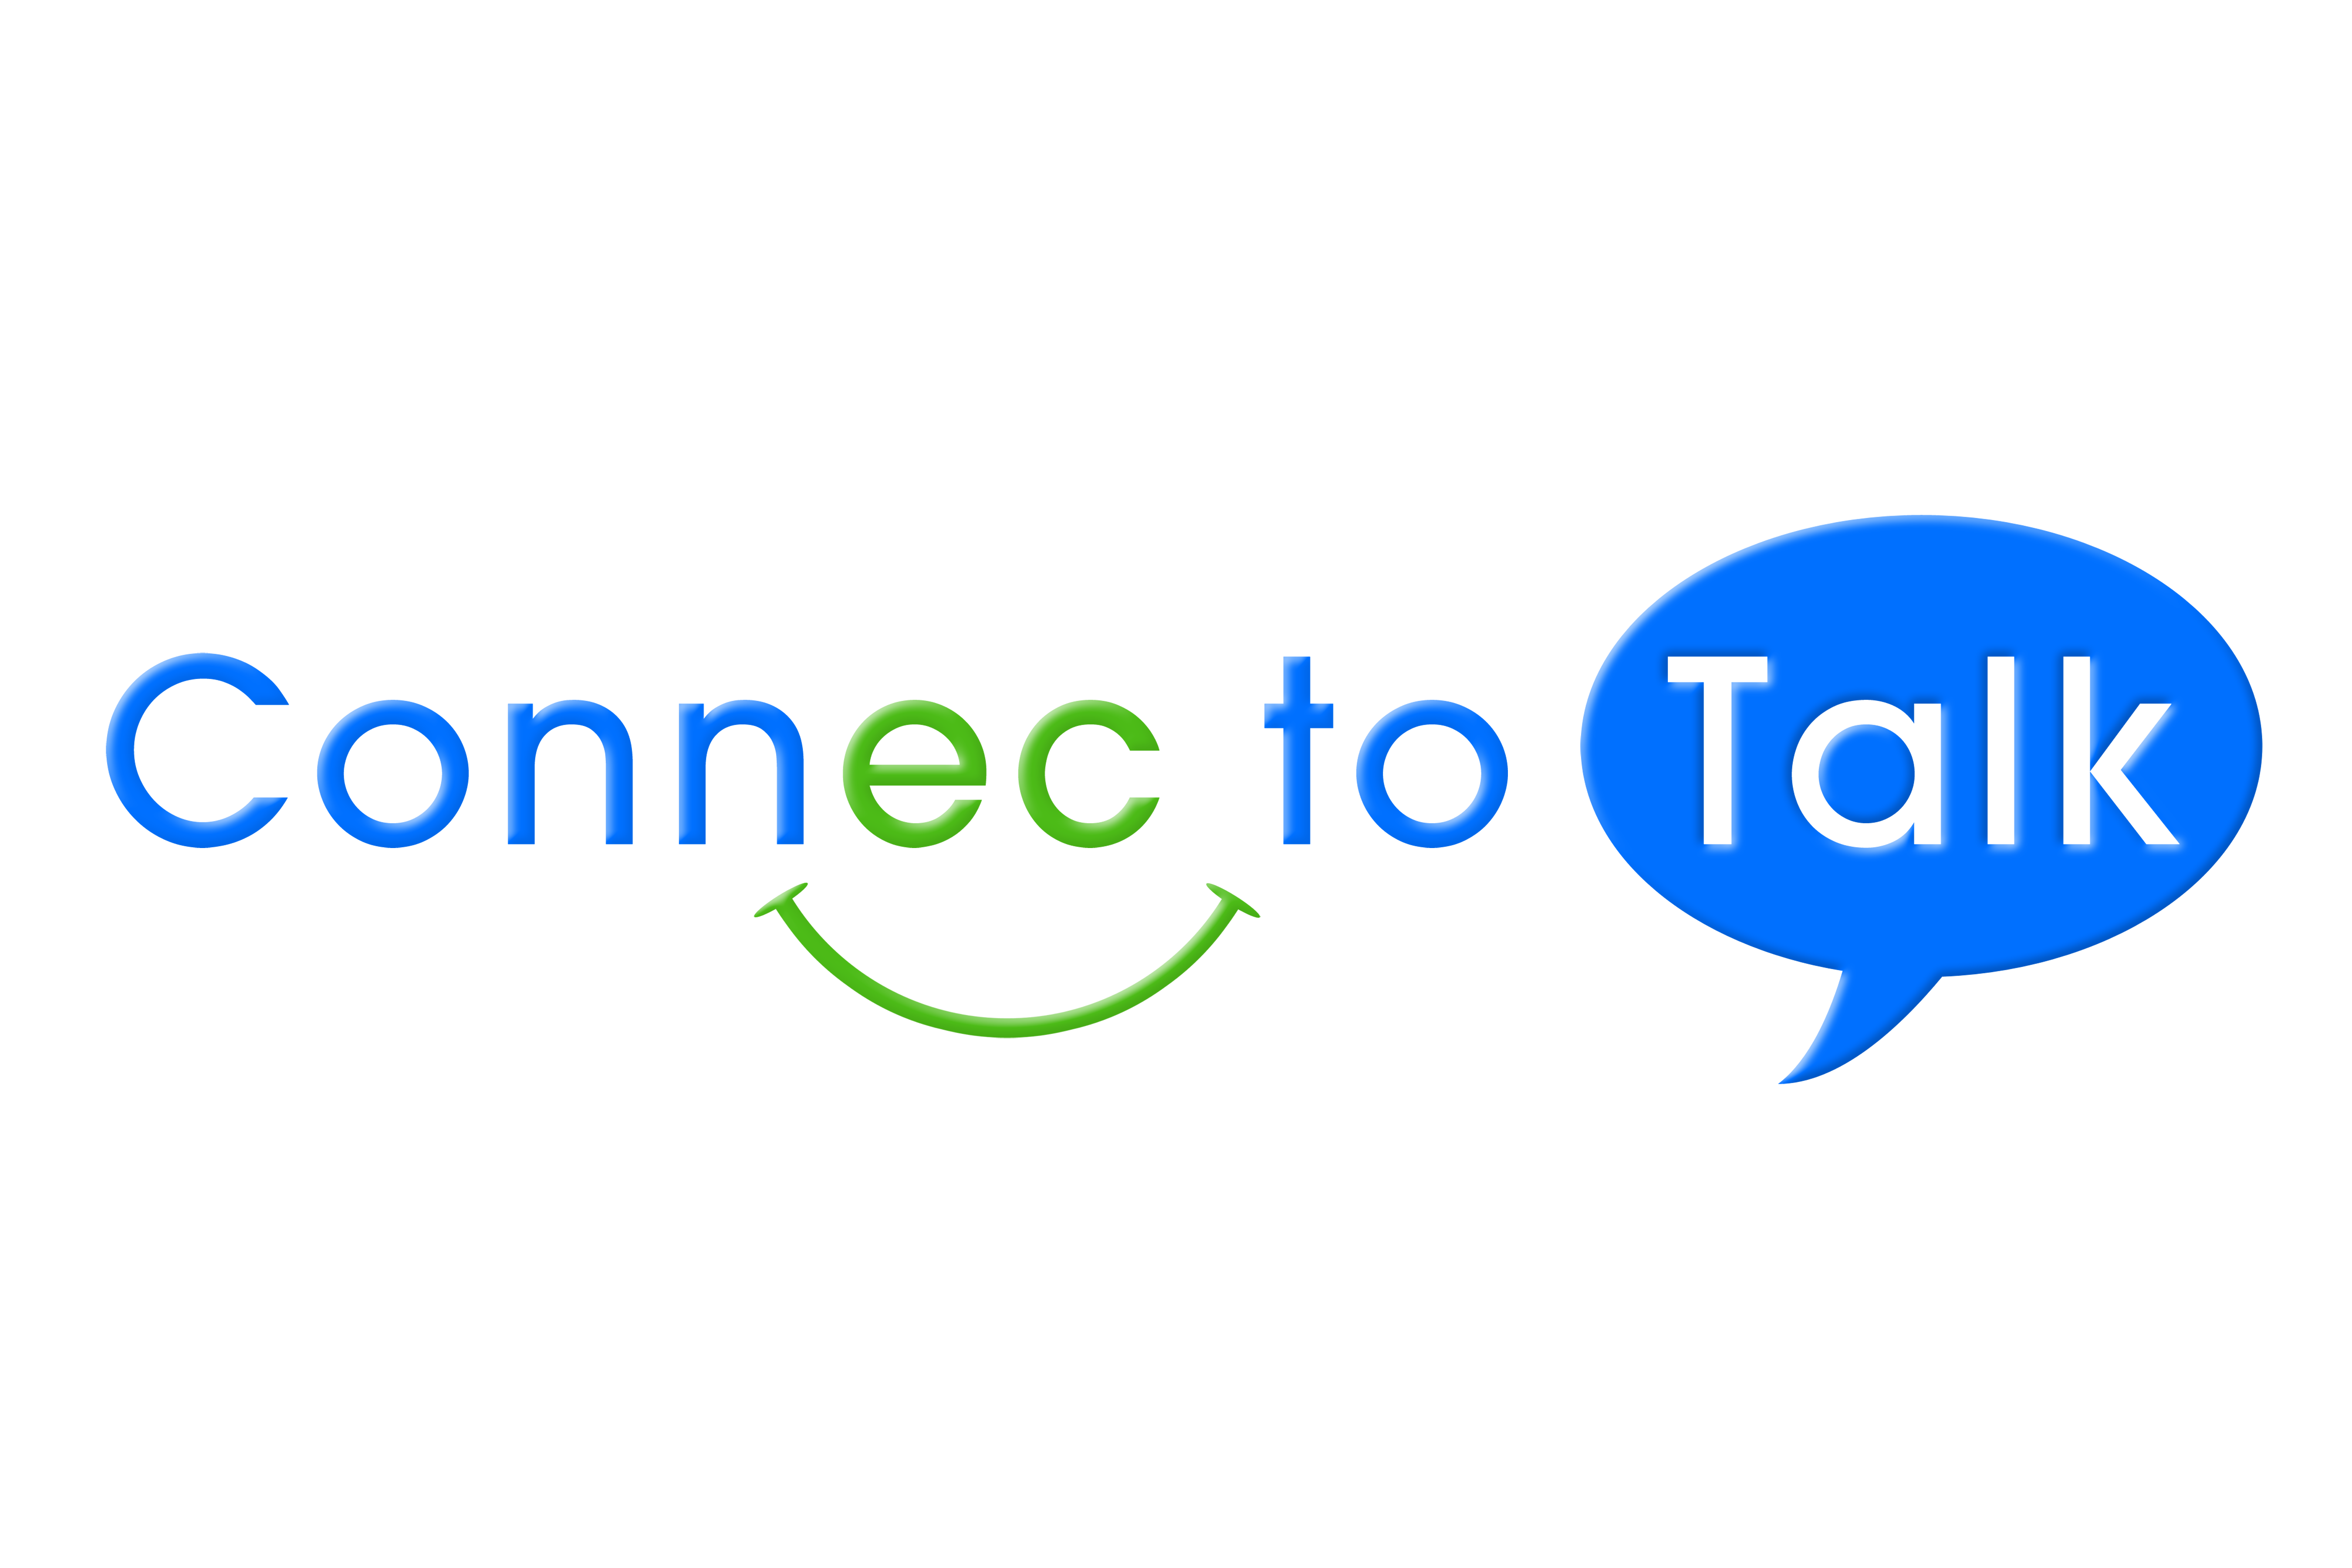 connec to talk